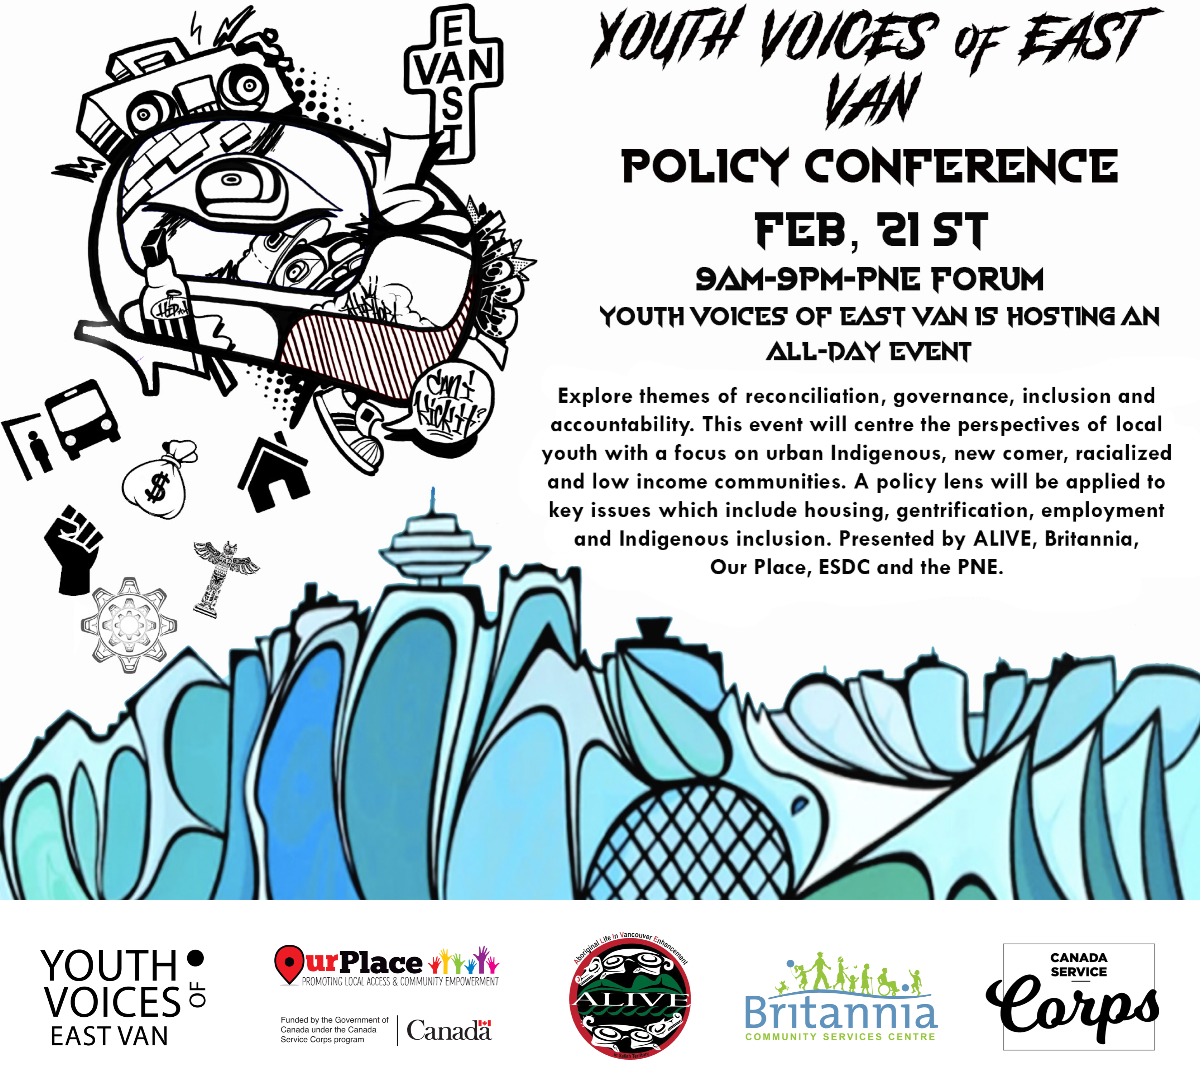 Youth Voices of East Van Policy Conference